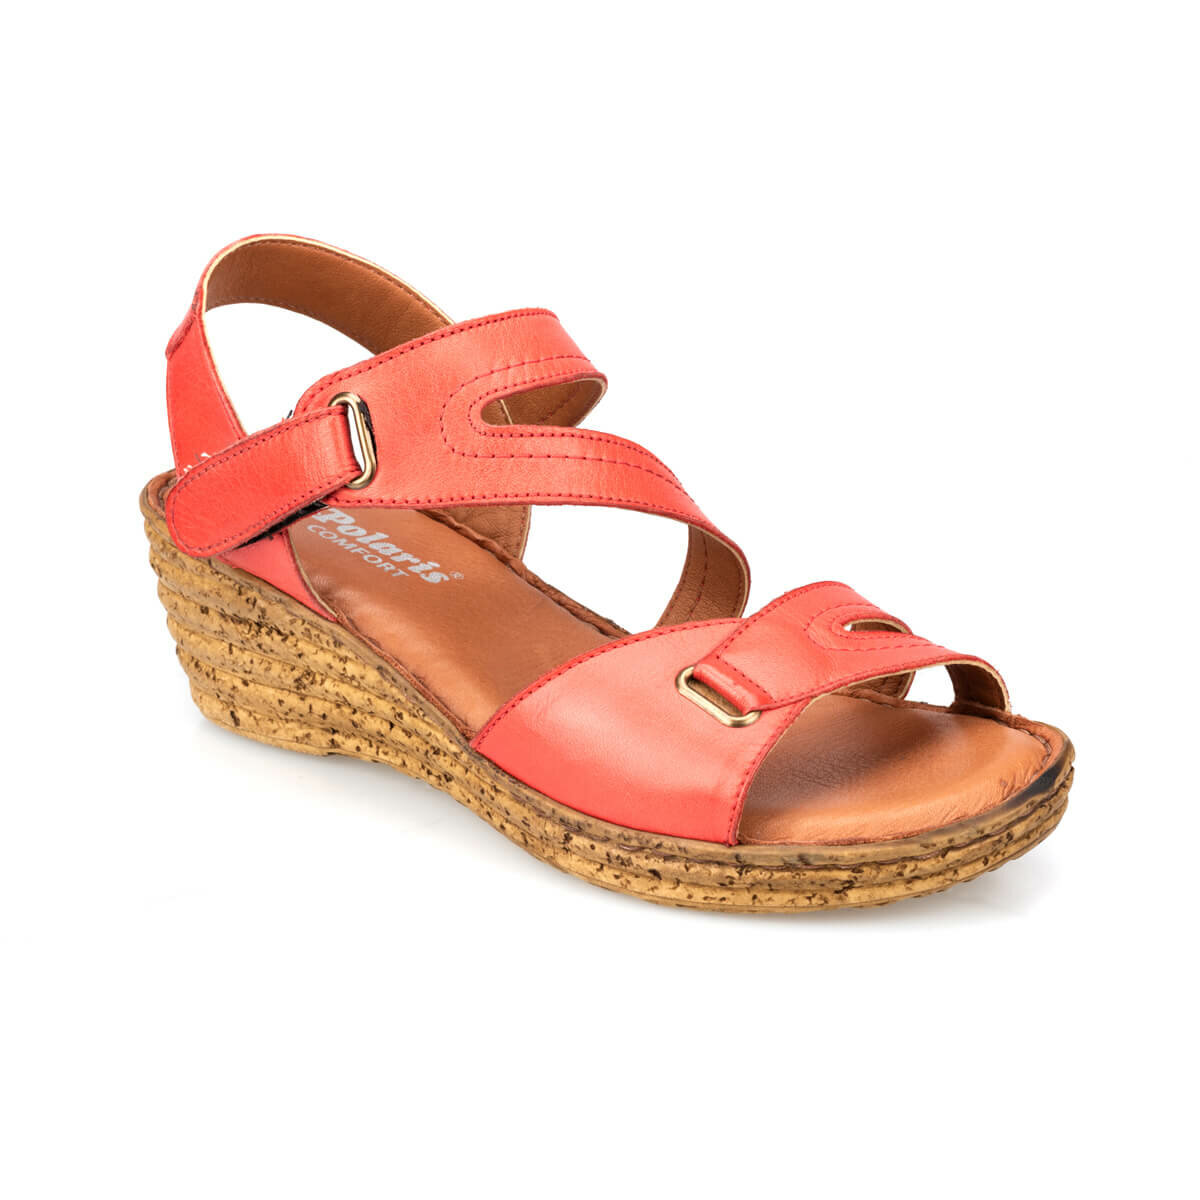 FLO 91.100792.Z Pomegranate Flower Female Sandals Polaris